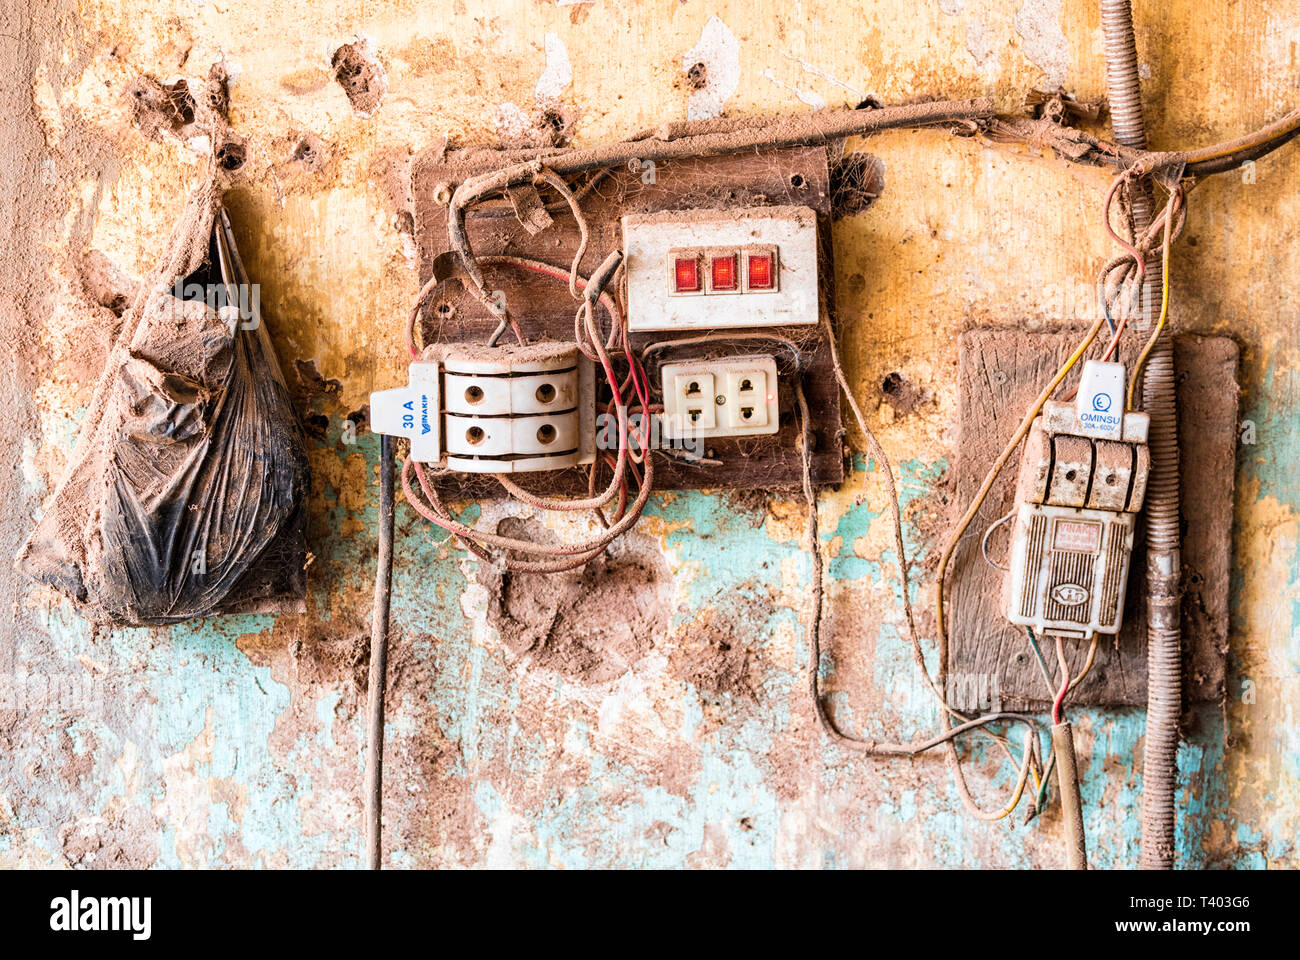 hight resolution of old electrical wiring hung yen province vietnam stock image